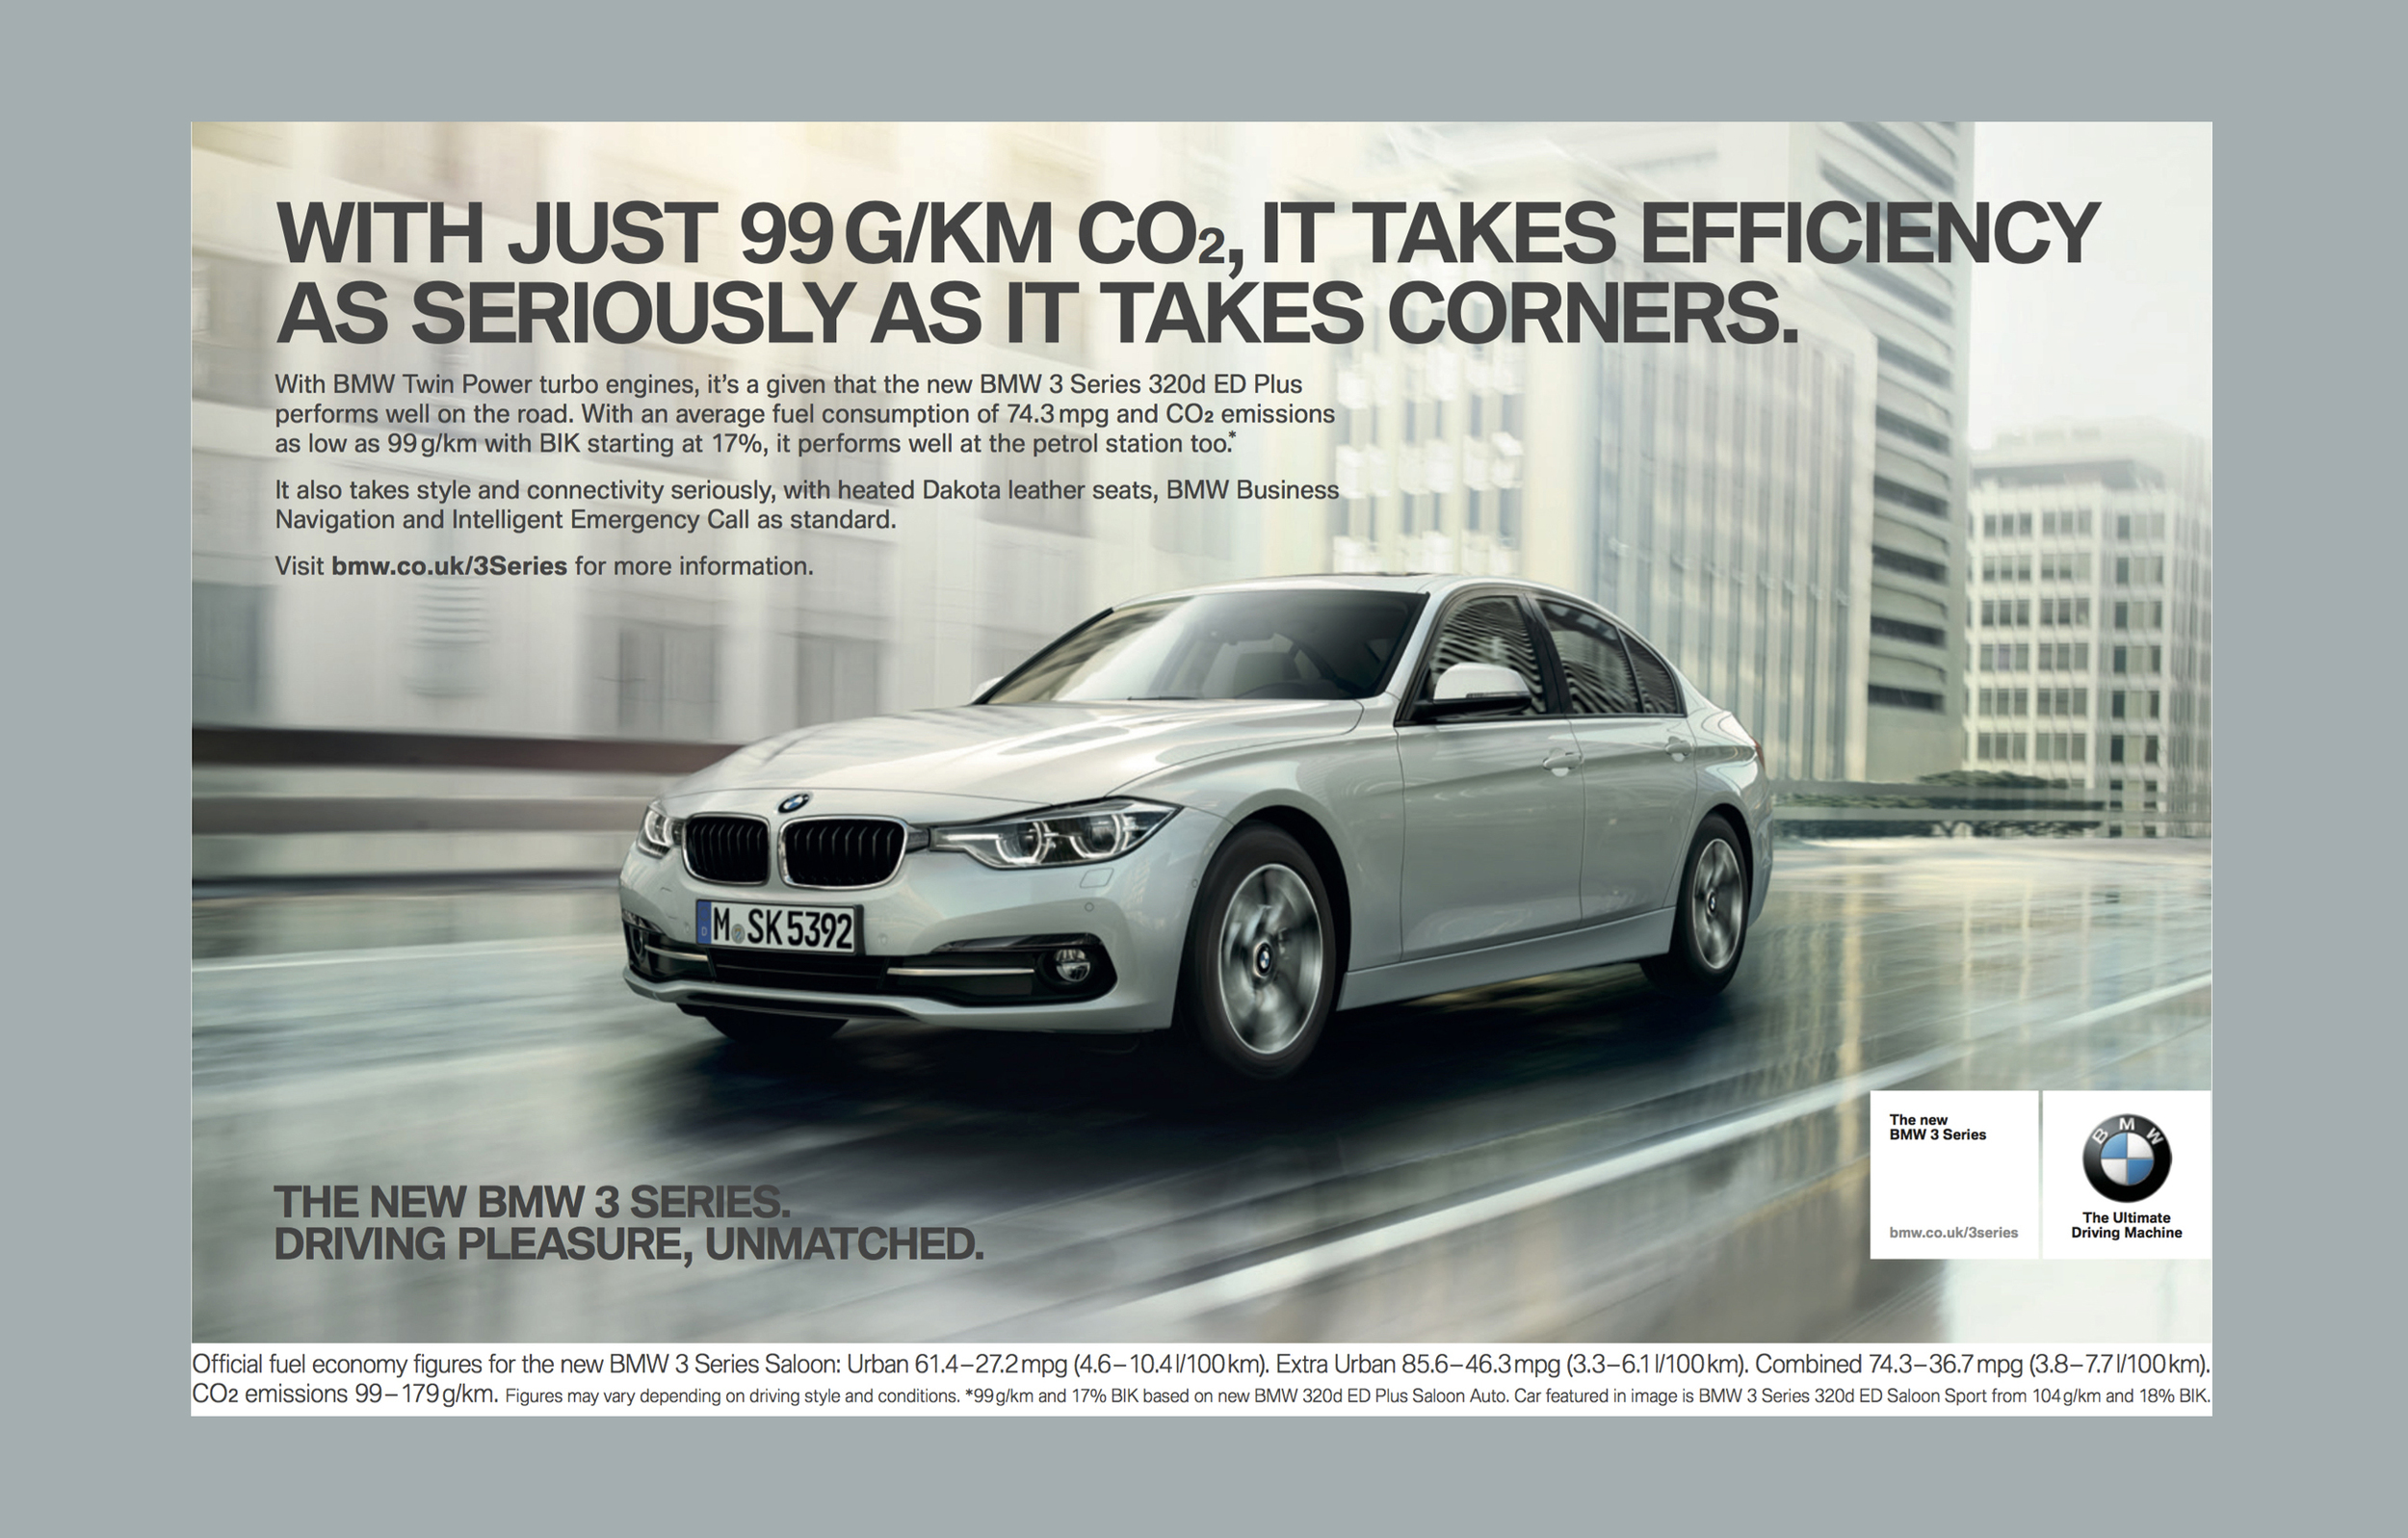 Helped Win The Bmw Account Off Wcrs After 35 Years Brown Waring